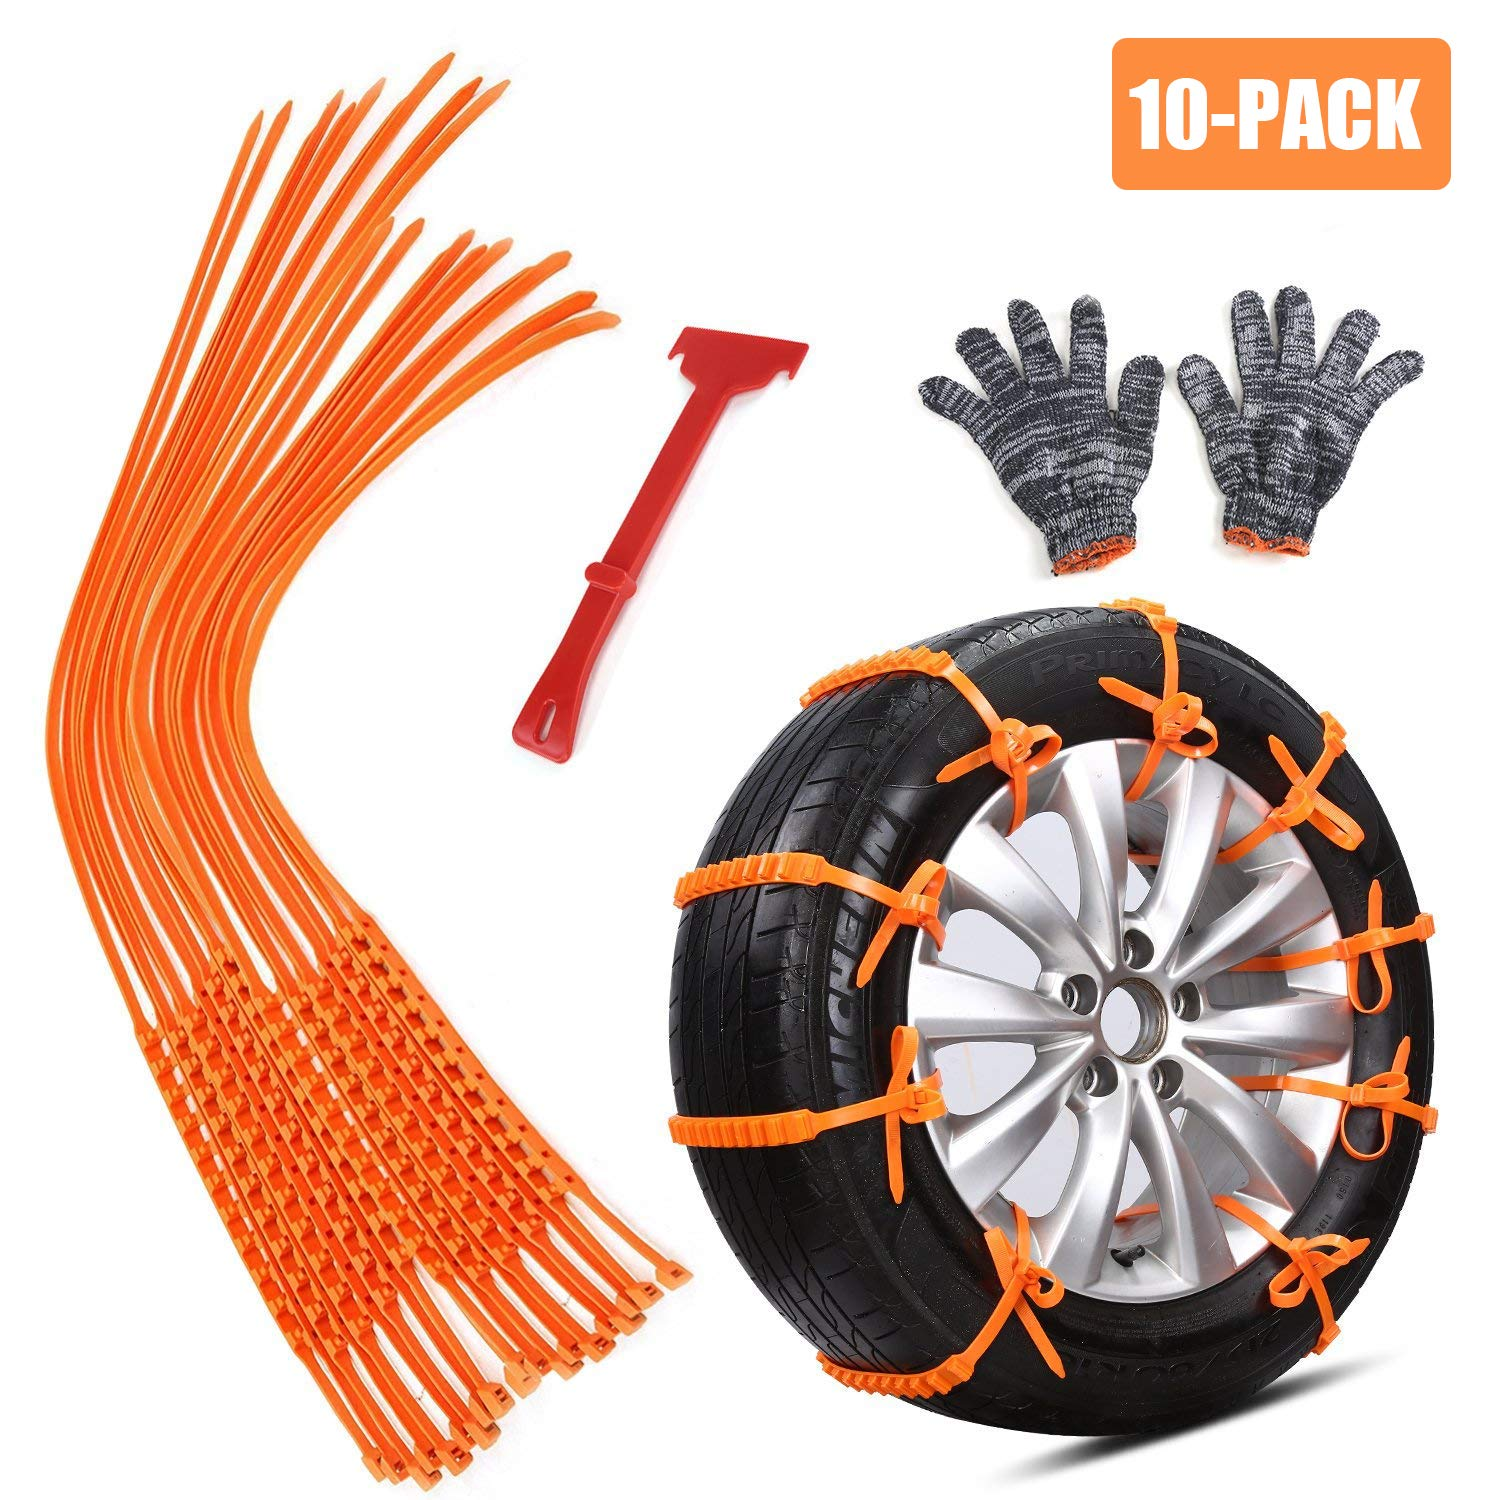 GAMPRO Anti-skid Chains 10 Pcs, Portable Emergency Traction Aid Anti-slip Snow Mud Sand Tire Chains Most Car SUV Van ATV etc. Comes Free Shovel Gloves(10 Pcs)